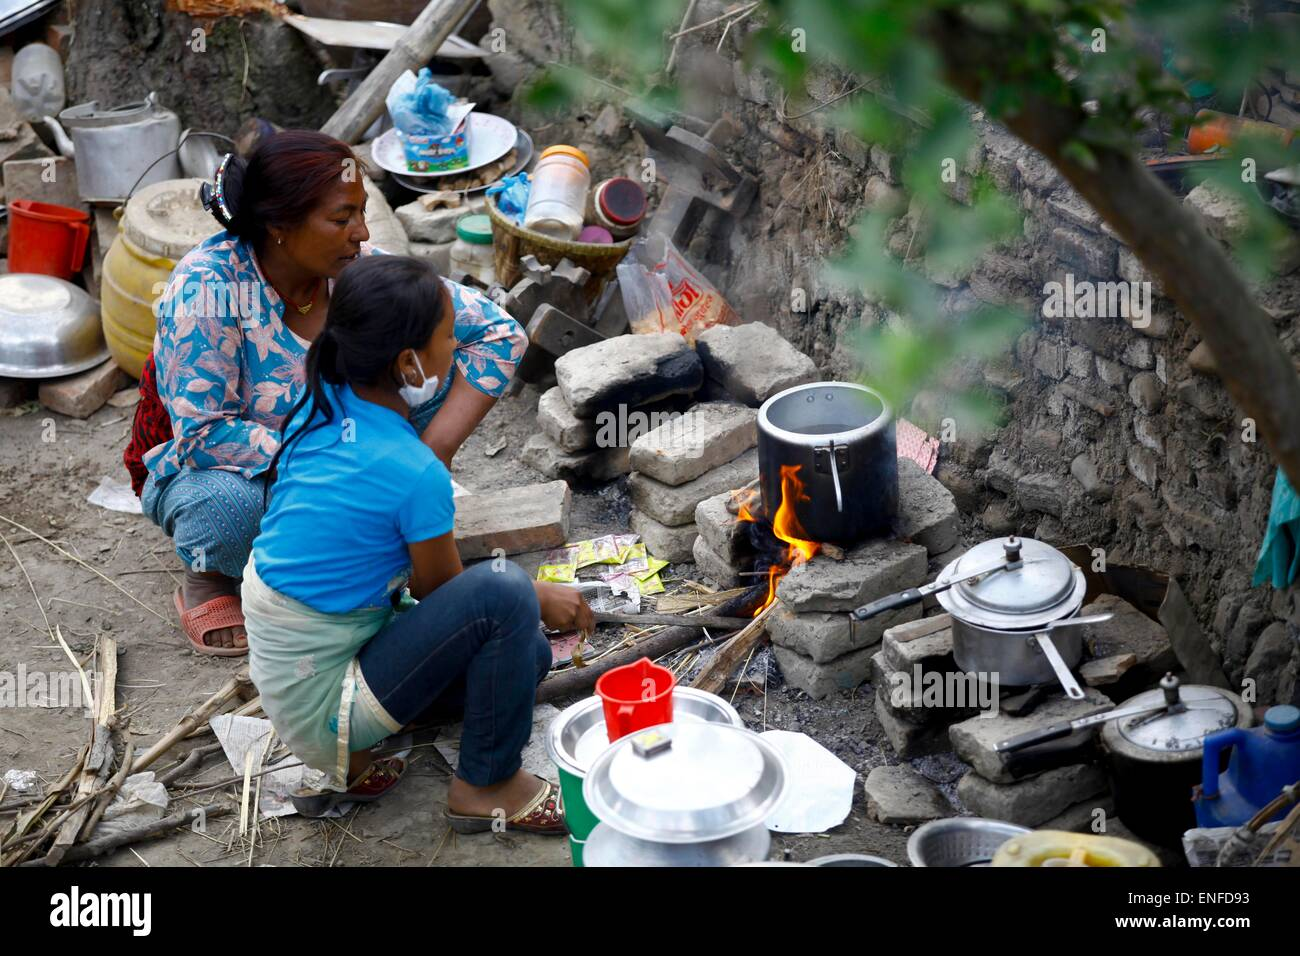 Lalitpur, Nepal  4th May, 2015  People cook food on roadside